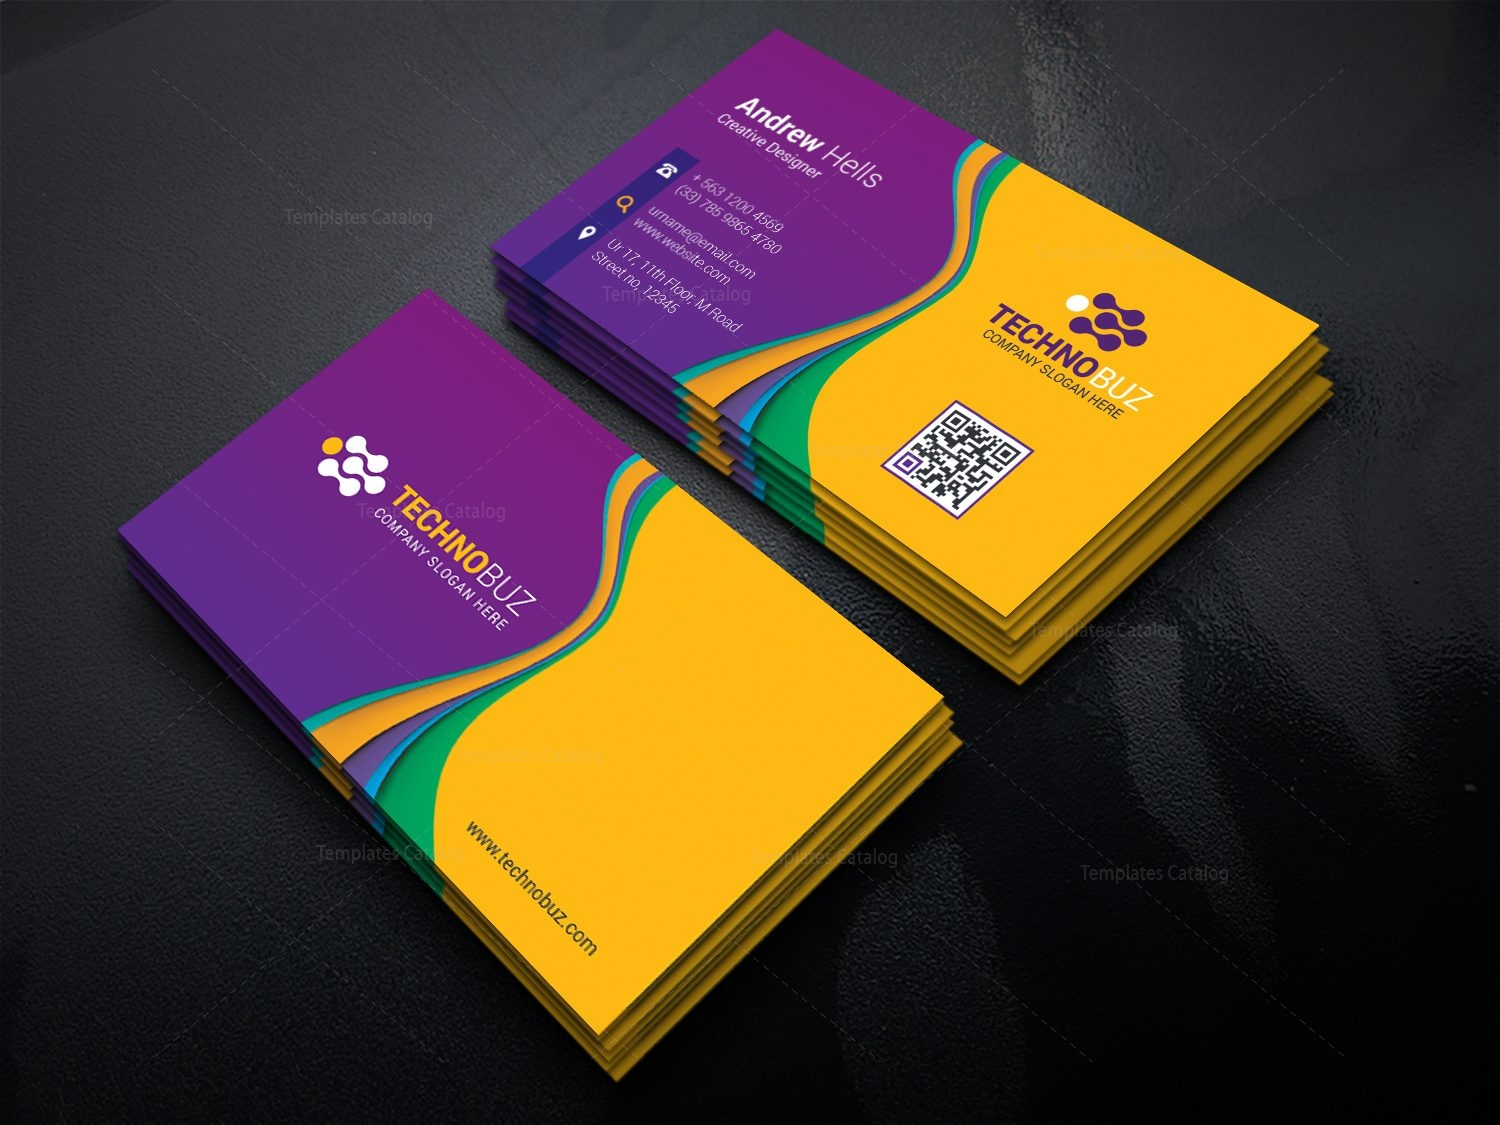 Polaris modern business card template 000770 template catalog polaris modern business card template 2 fbccfo Gallery